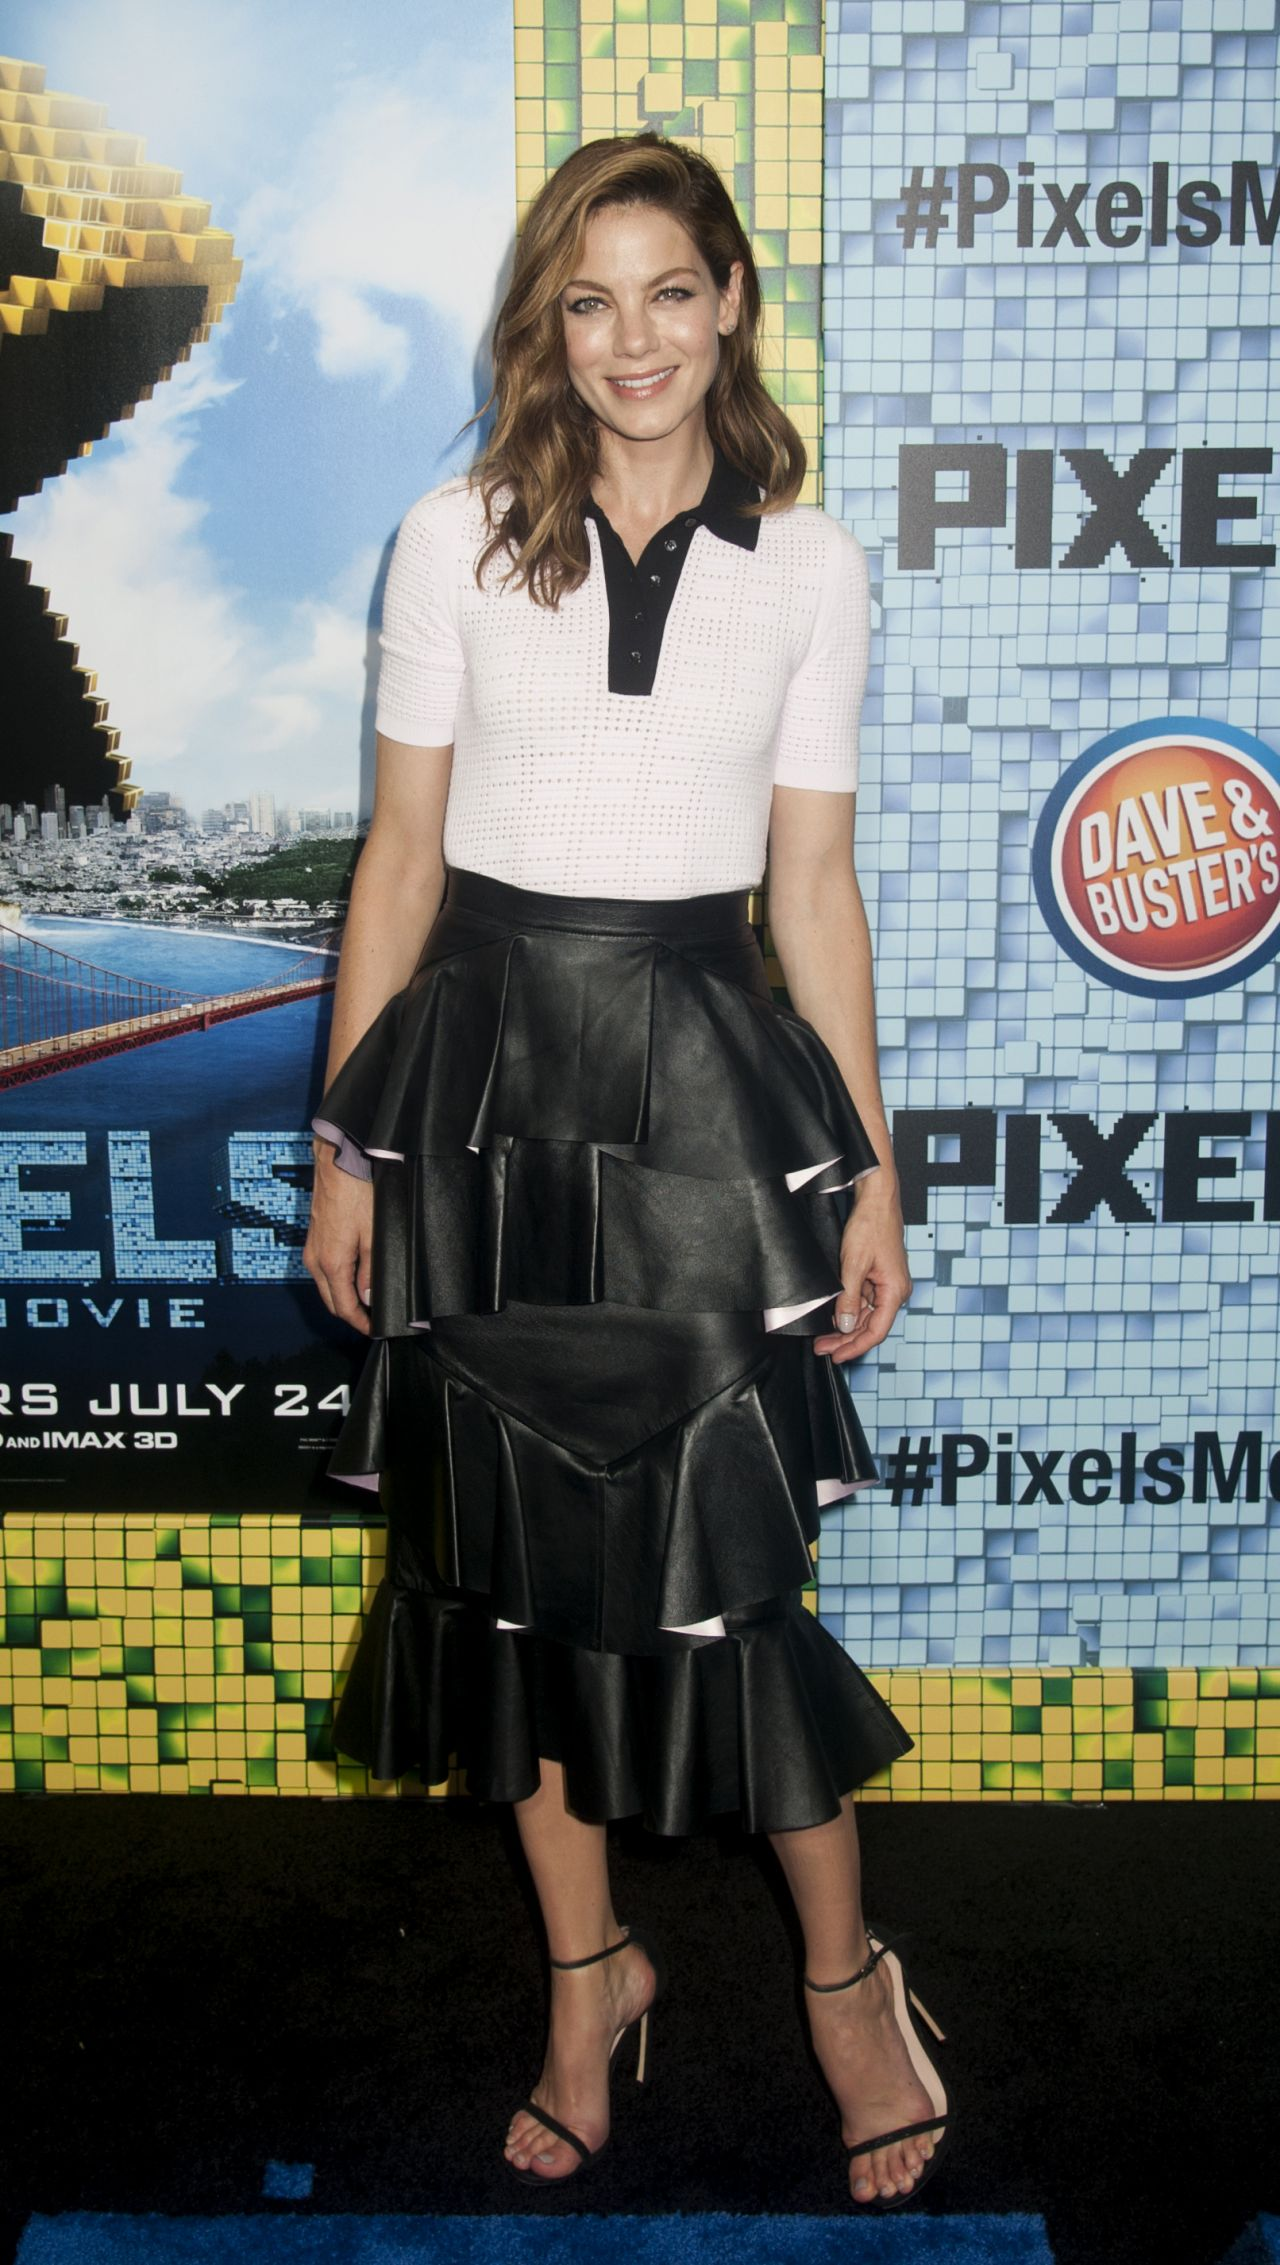 michelle-monaghan-pixels-premiere-in-new-york-city_14